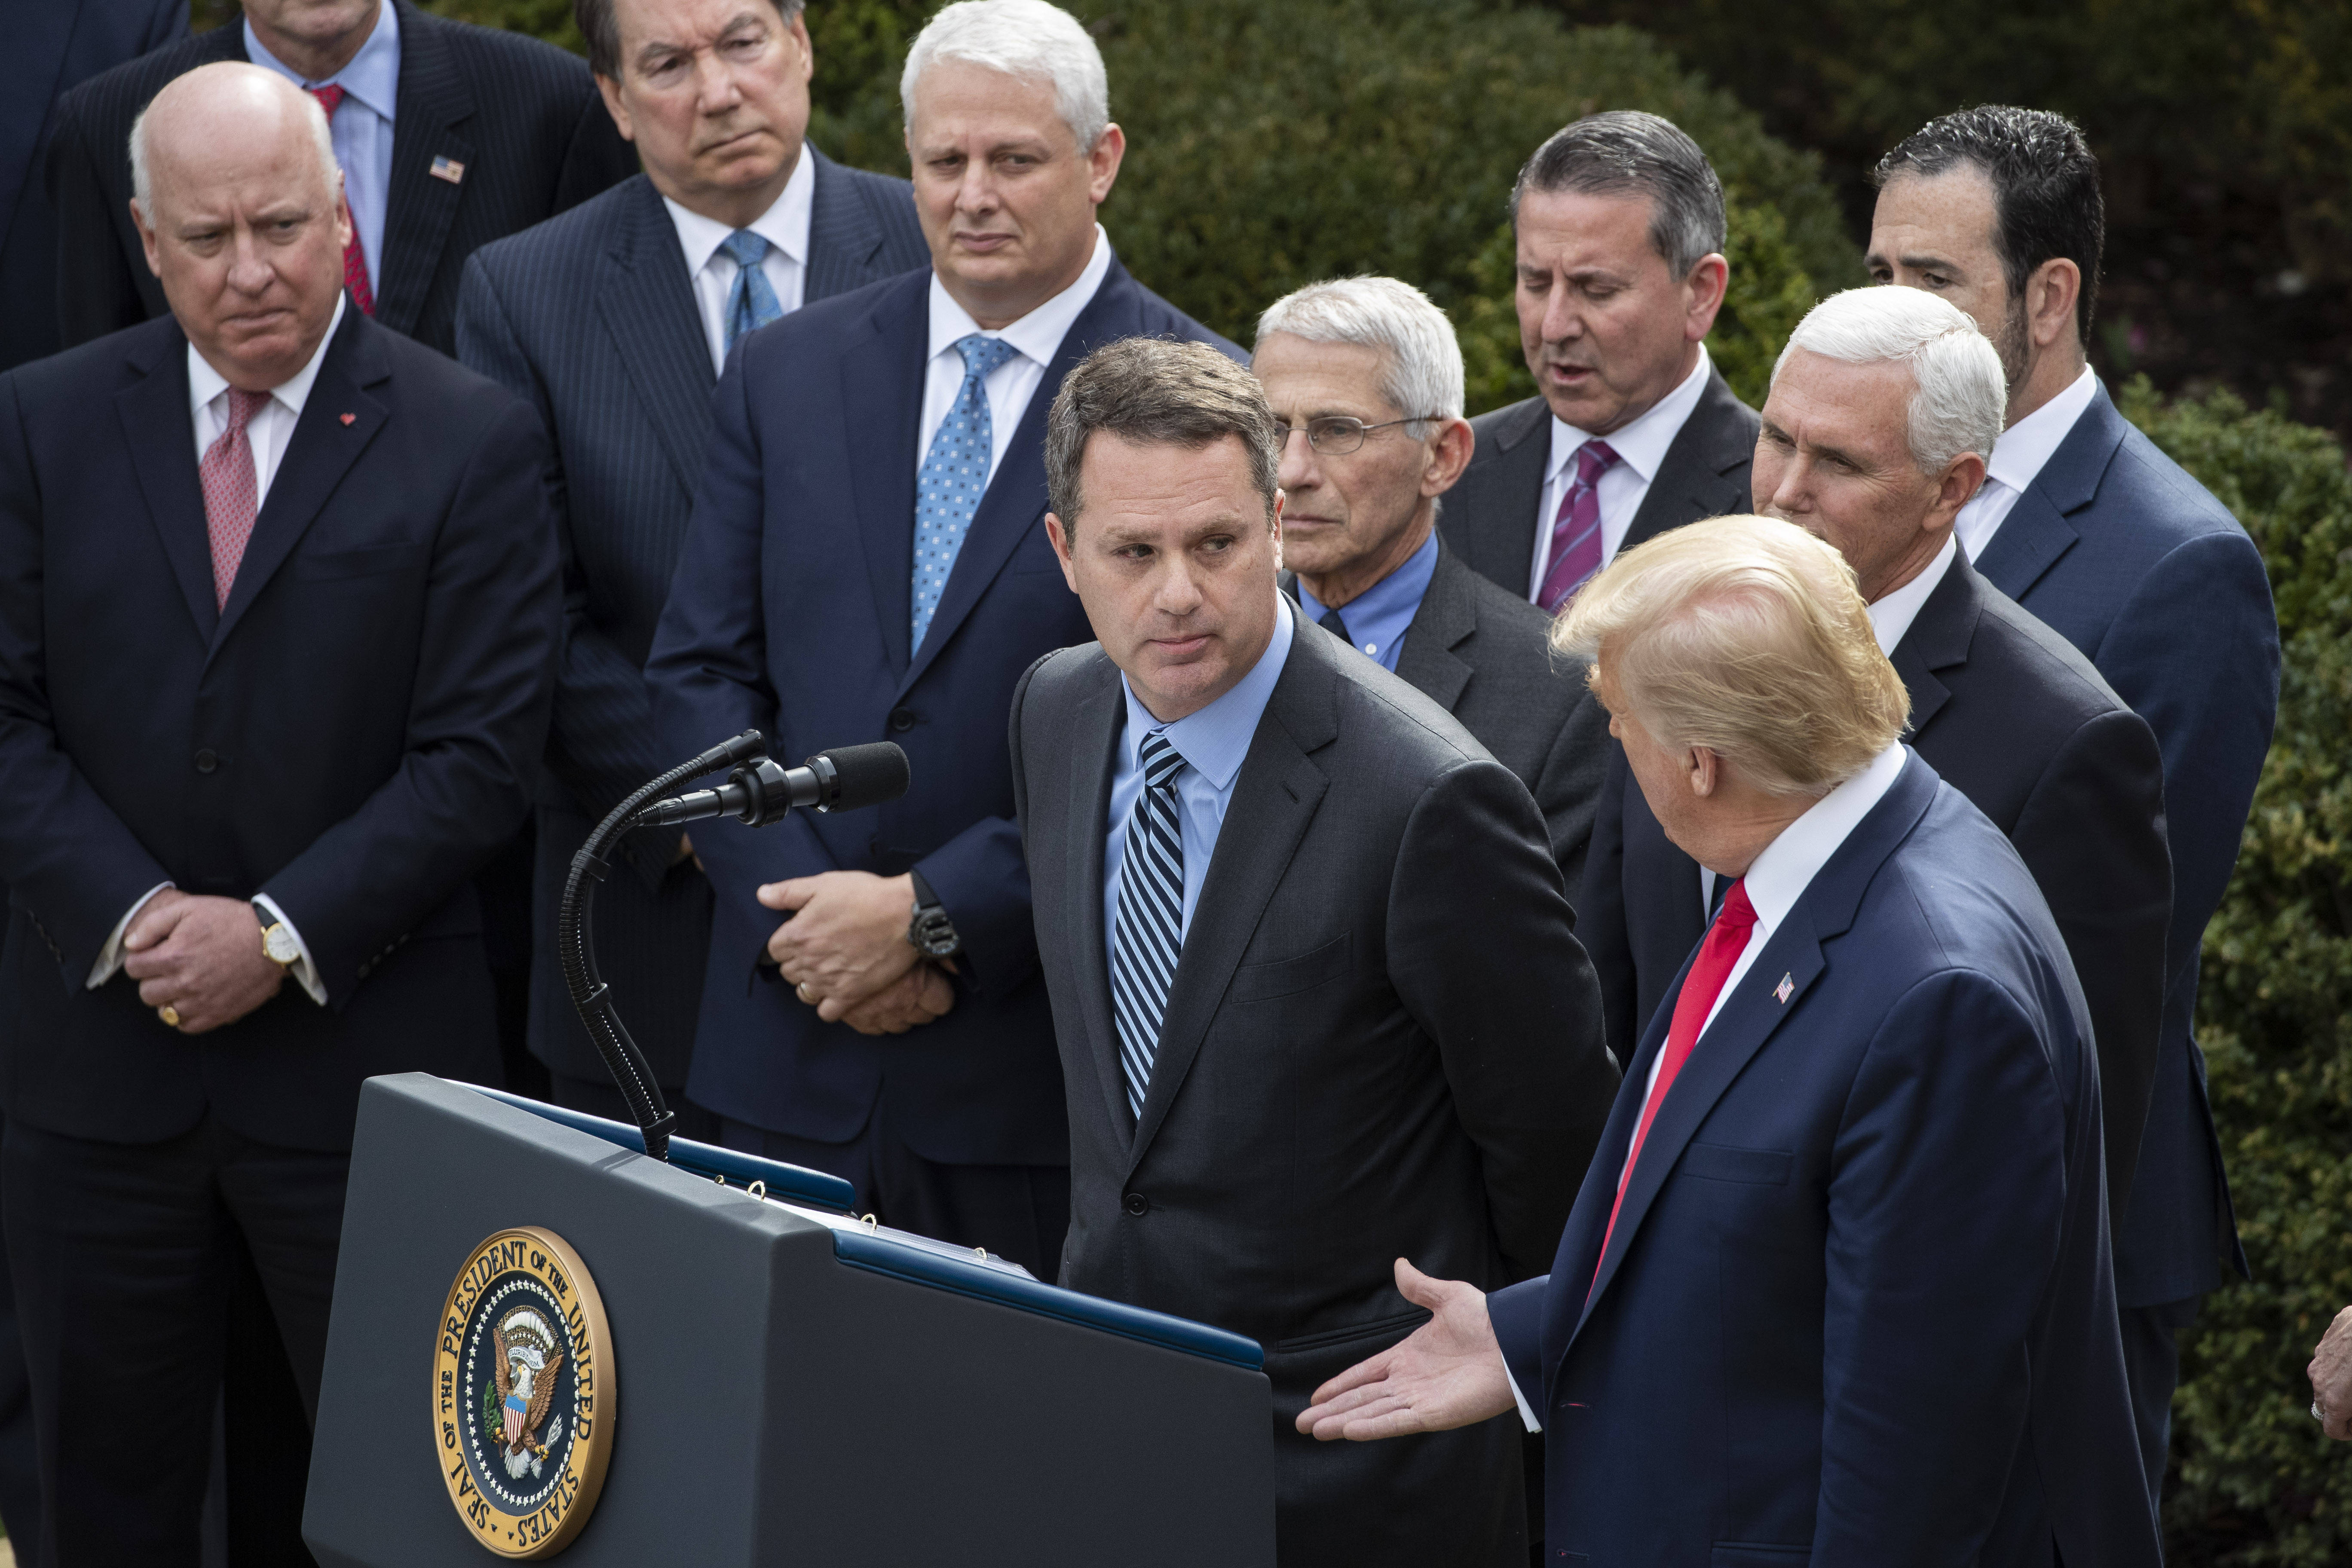 President Trump offers a handshake to the CEO of Walmart, Doug McMillon, during a coronavirus briefing March 13 as his administration urges Americans not to shake hands, among other social distancing measures. (Alex Brandon/AP)